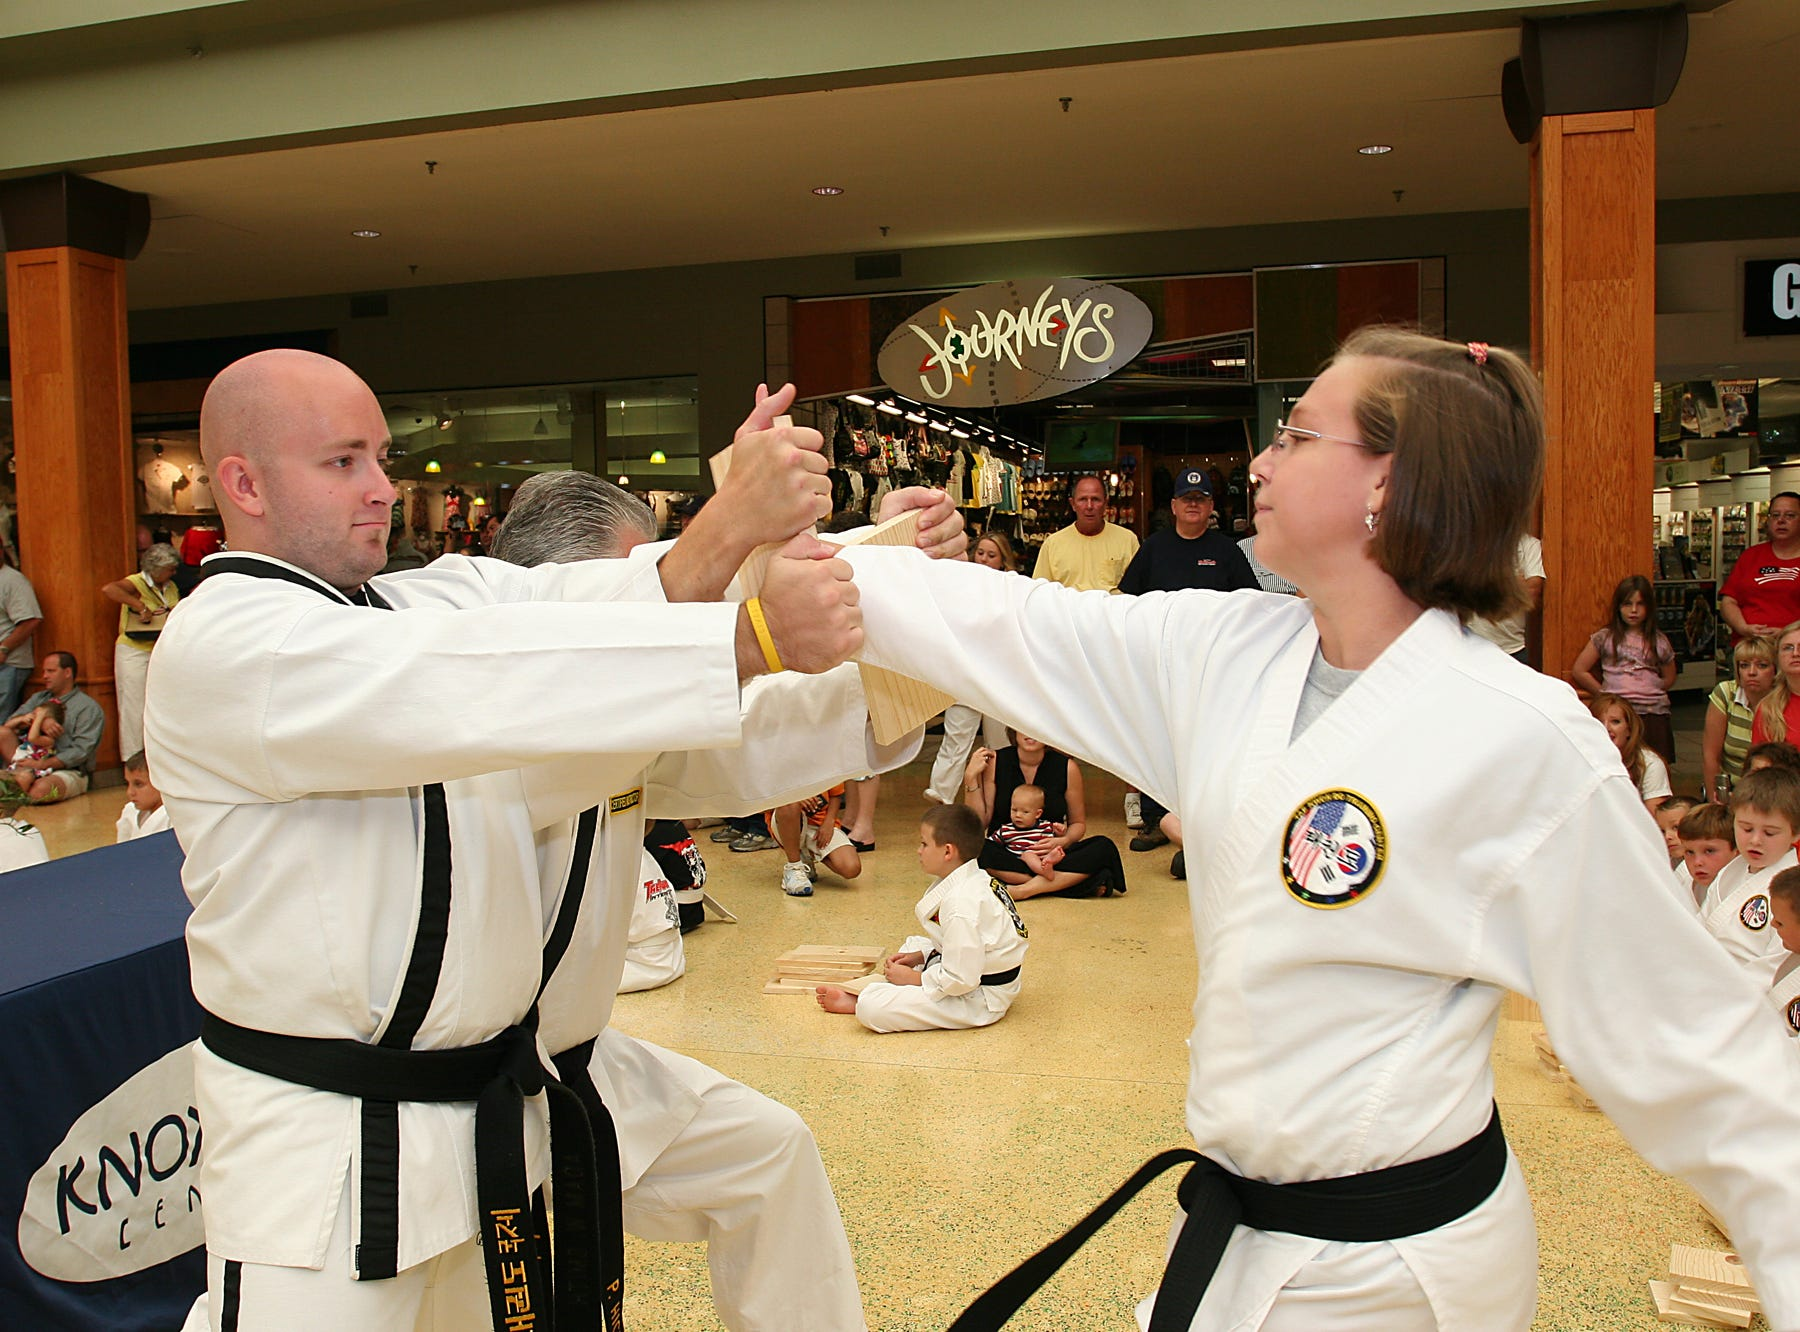 Jenny Spangler, 12, of Horace Maynard Middle School, breaks through a board while Adam Smith of Fountain City braces it during TaeKwonDo International's 7th Annual Board Break-a-thon at Knoxville Center mall on Labor Day.